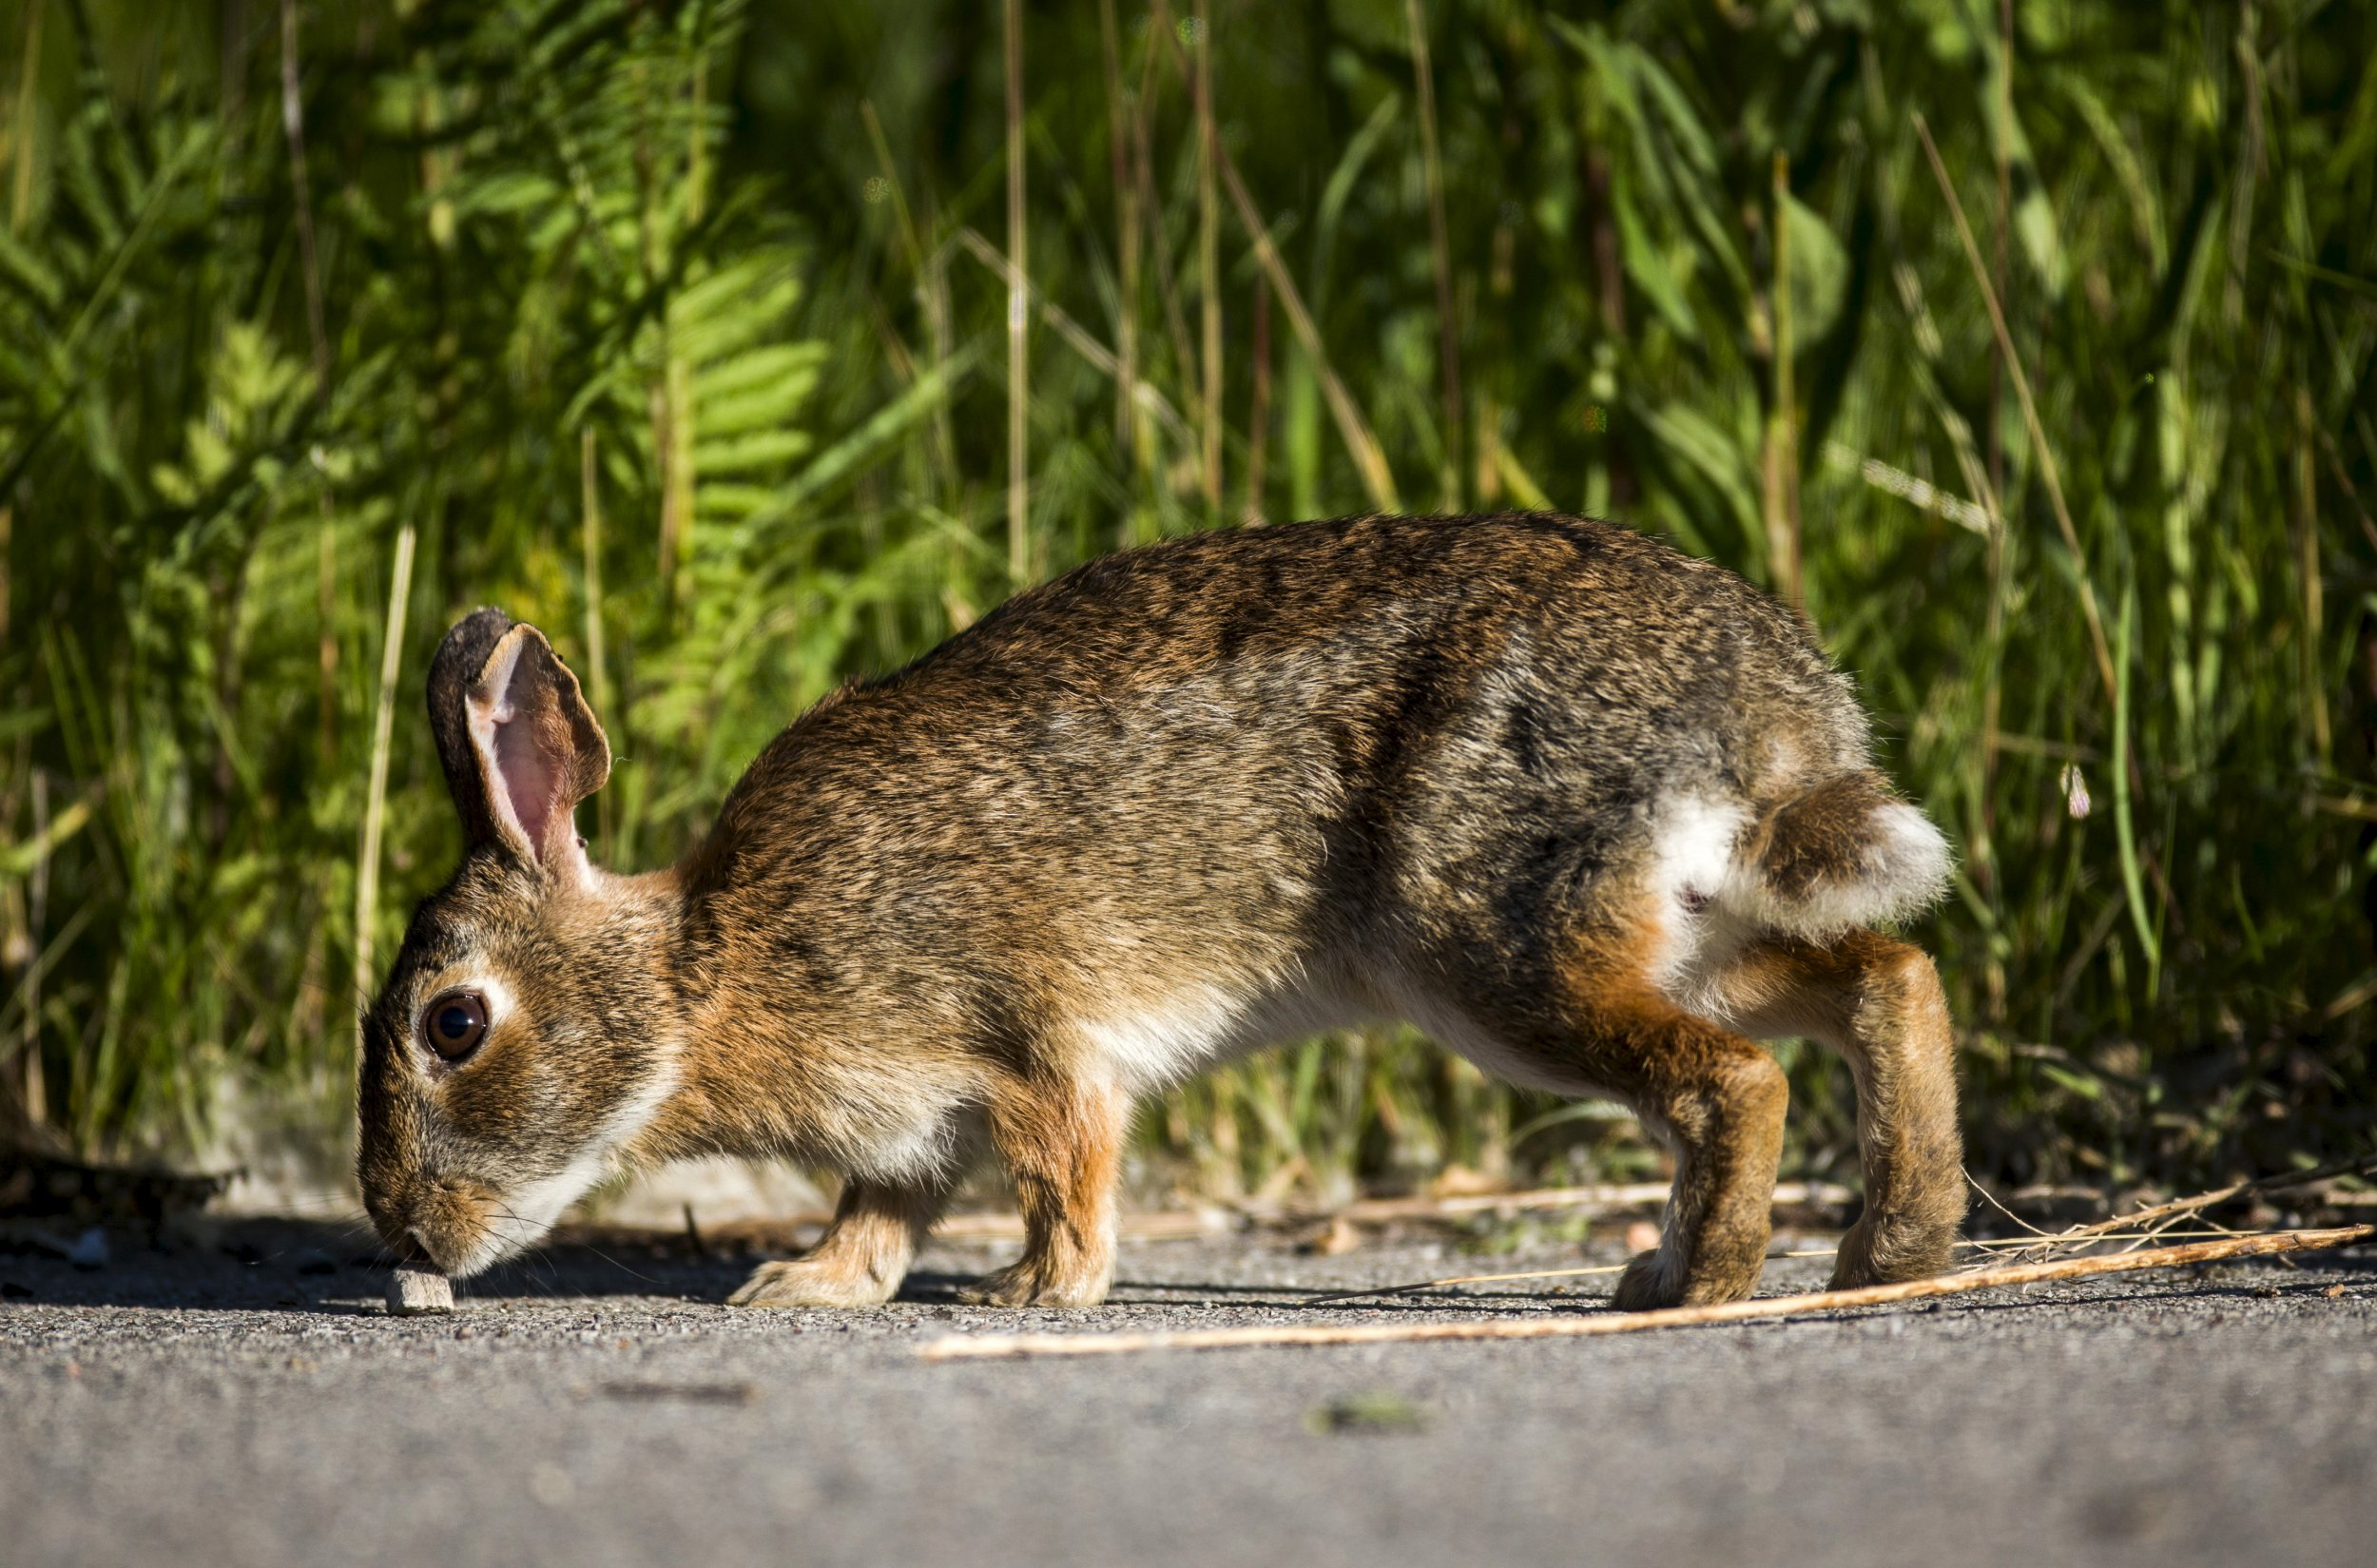 Rabbit Fever on the Rise in the U.S.